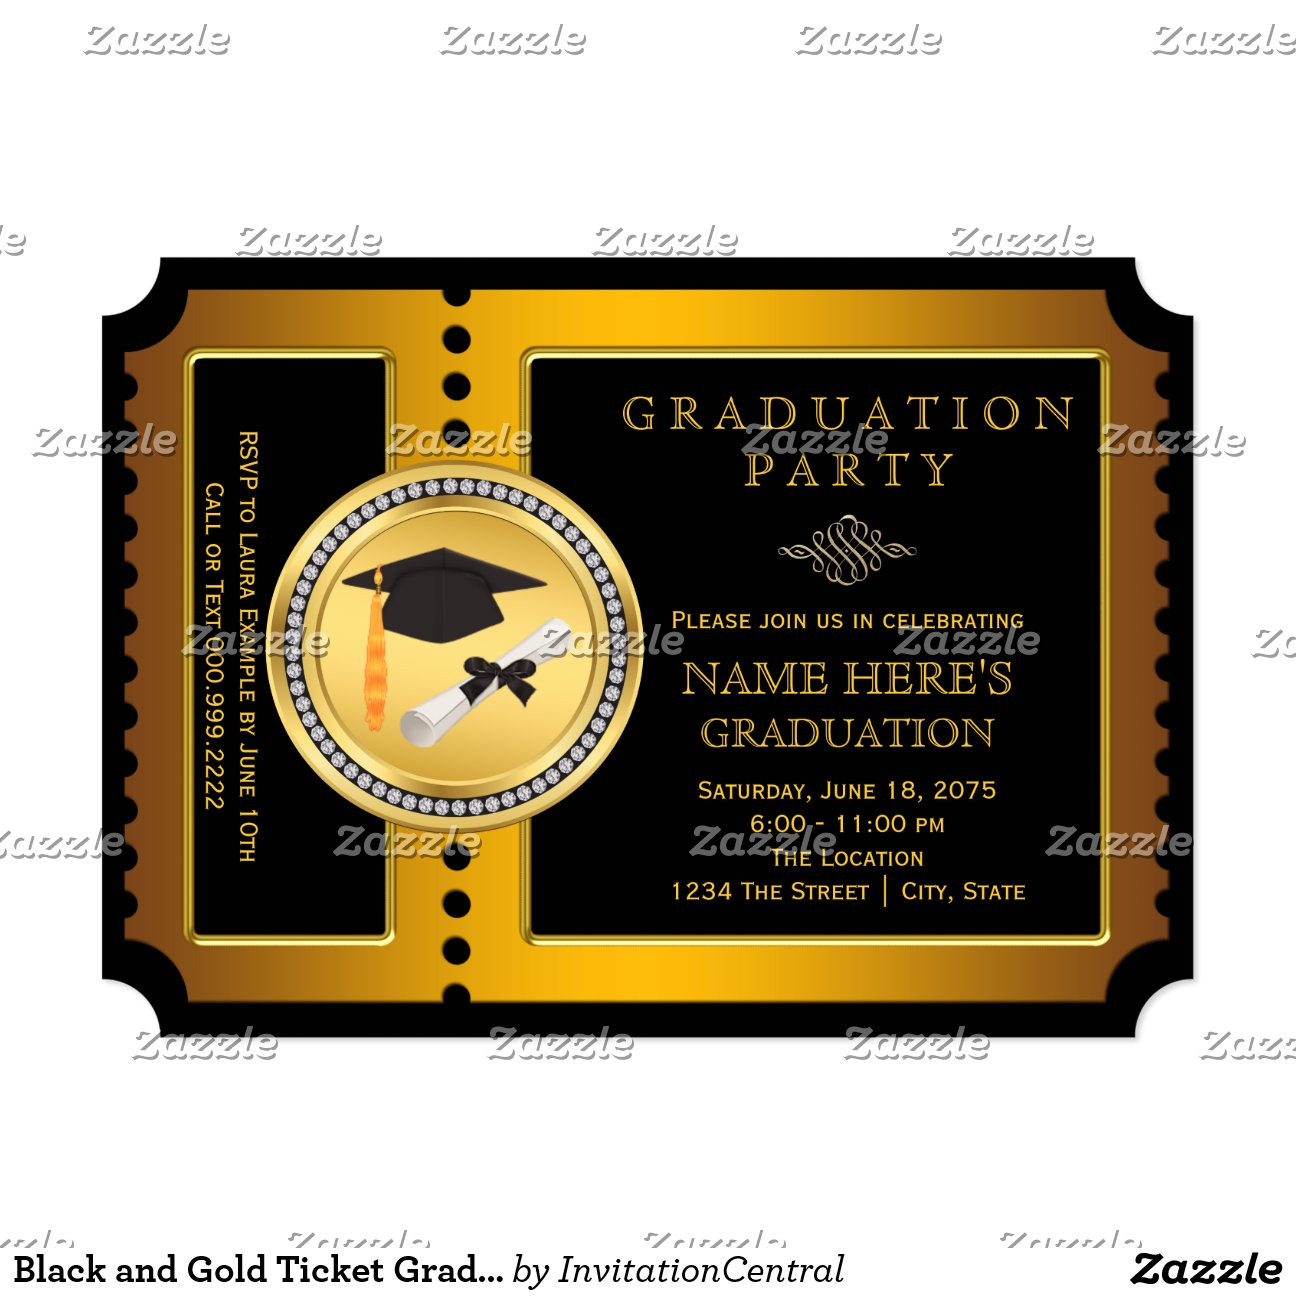 graduation paper ideas 20+ graduation party ideas you can easily adopt to create your own splendid graduation party.